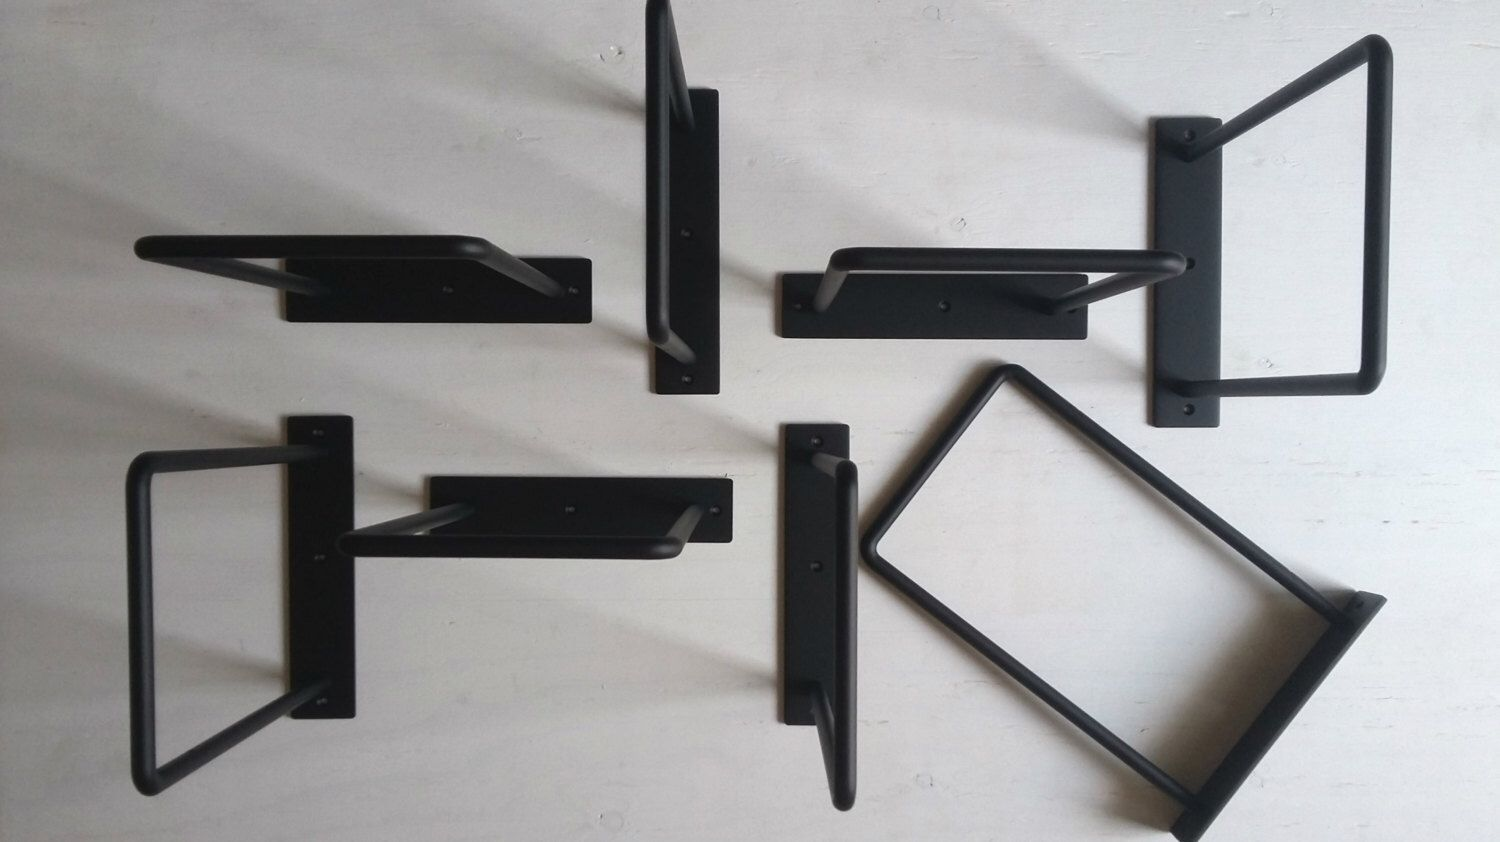 minimalist shelf brackets big version pair querres tablette minimaliste gros format paire